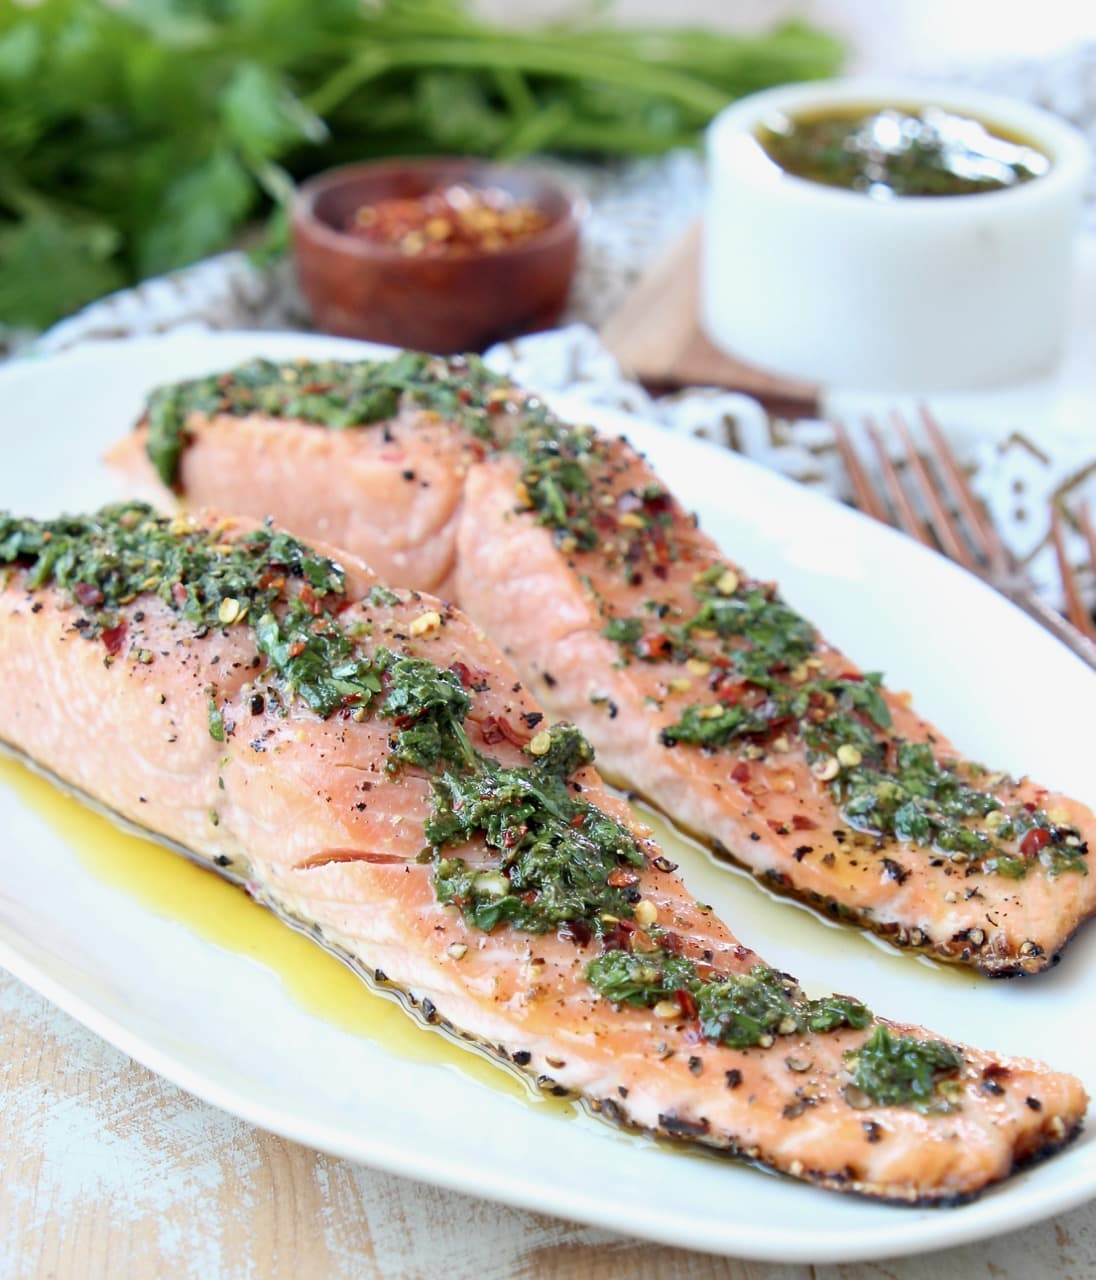 Slices of salmon on plate topped with chimichurri sauce